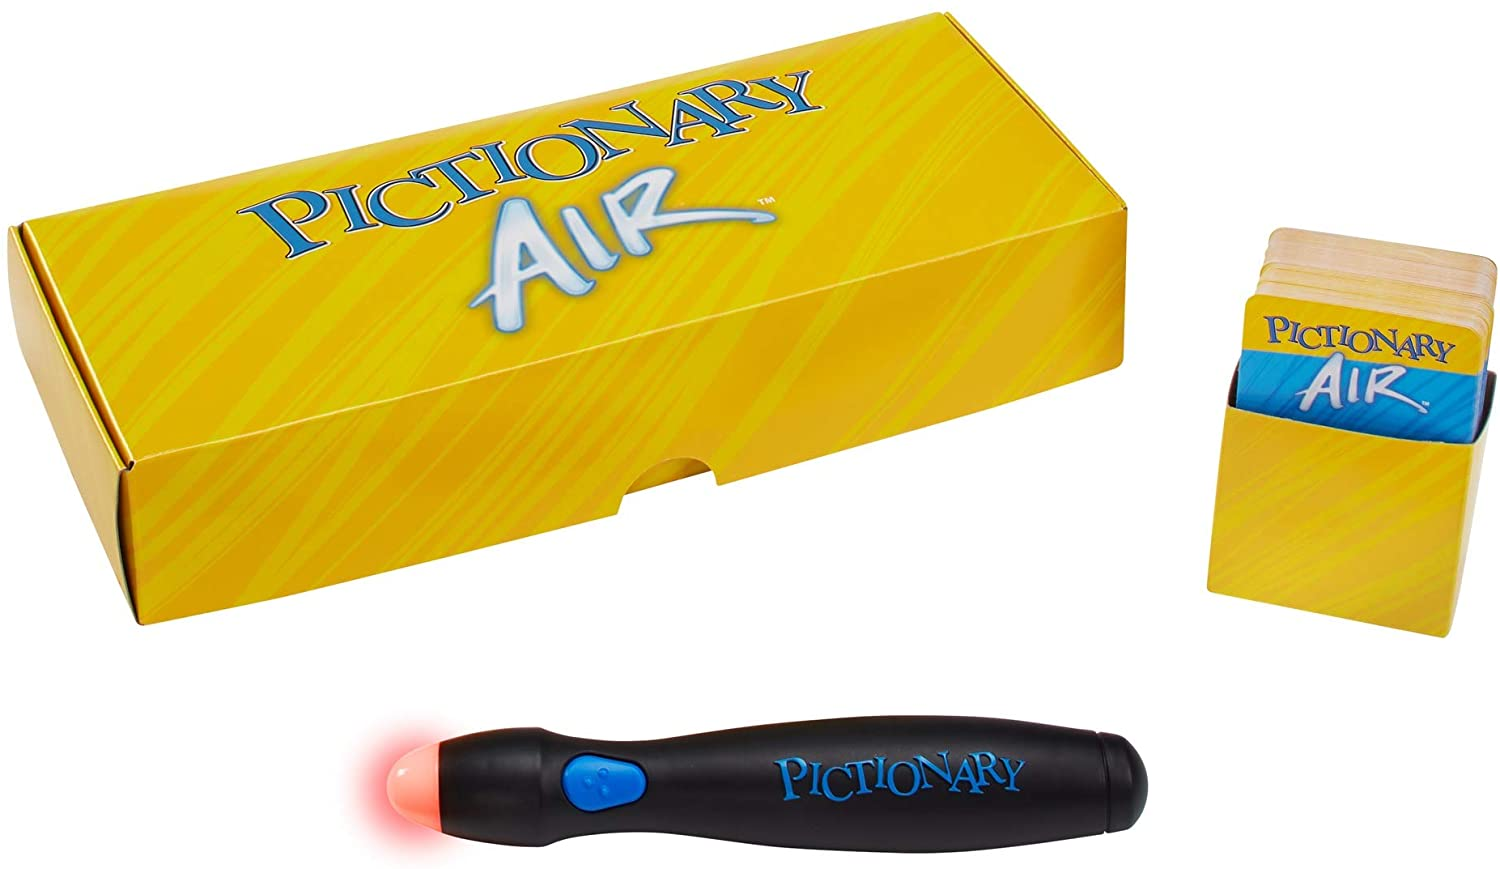 PICTIONARY AIR GPL50